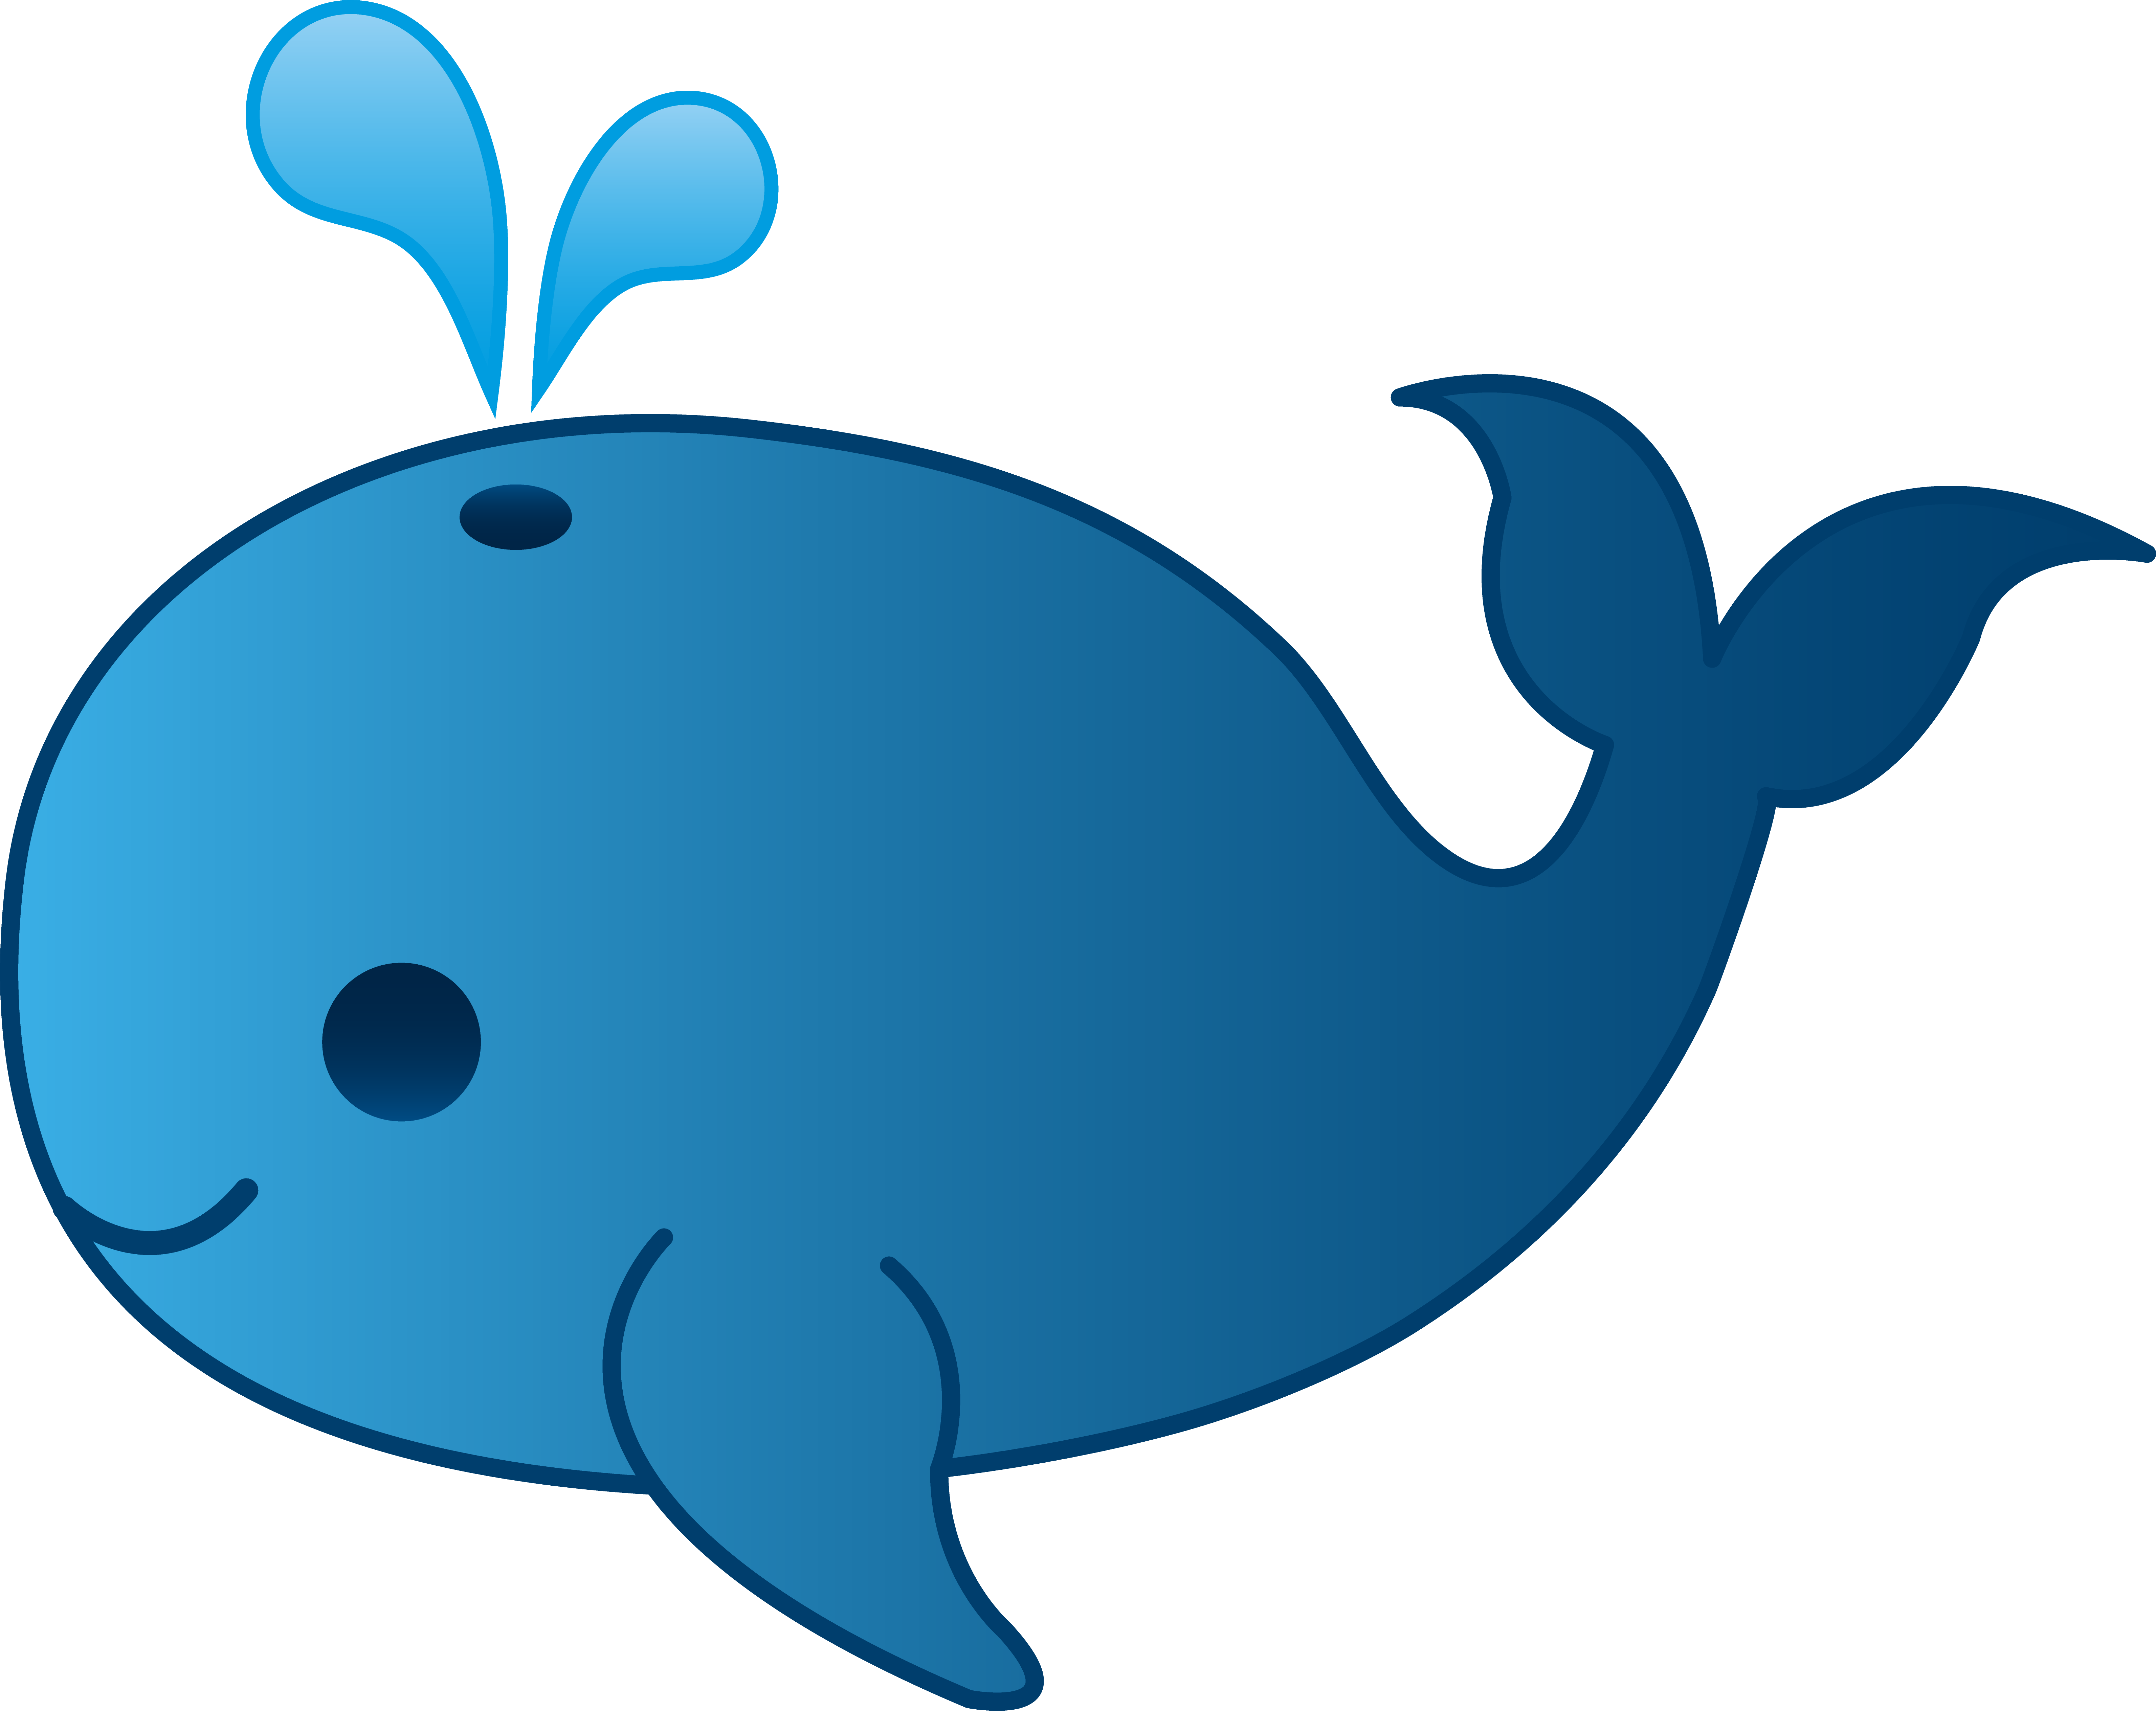 Whale clipart good morning